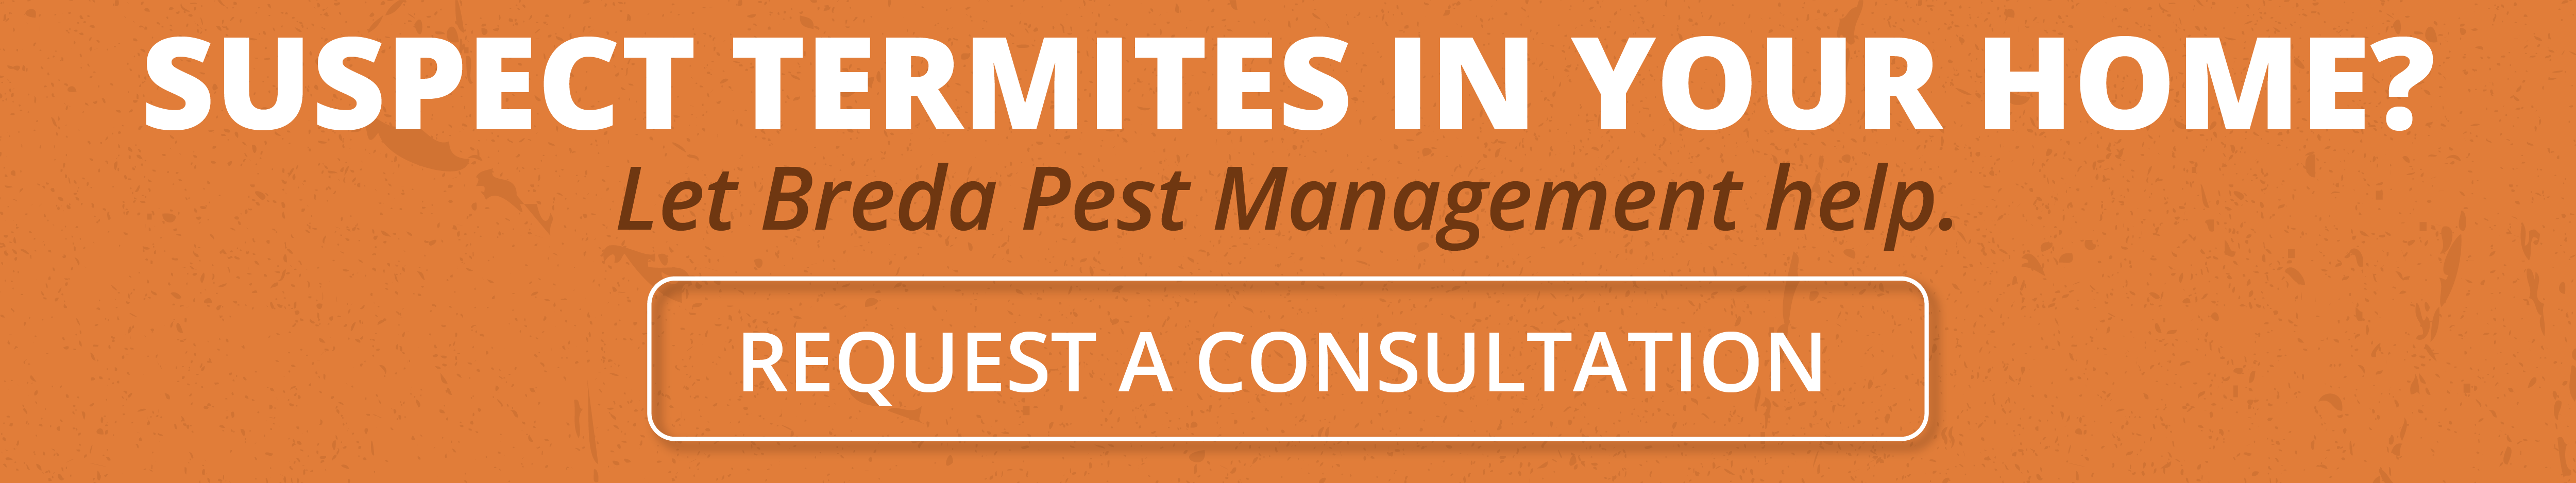 Suspect termites in your home? Let Breda Pest Management help.